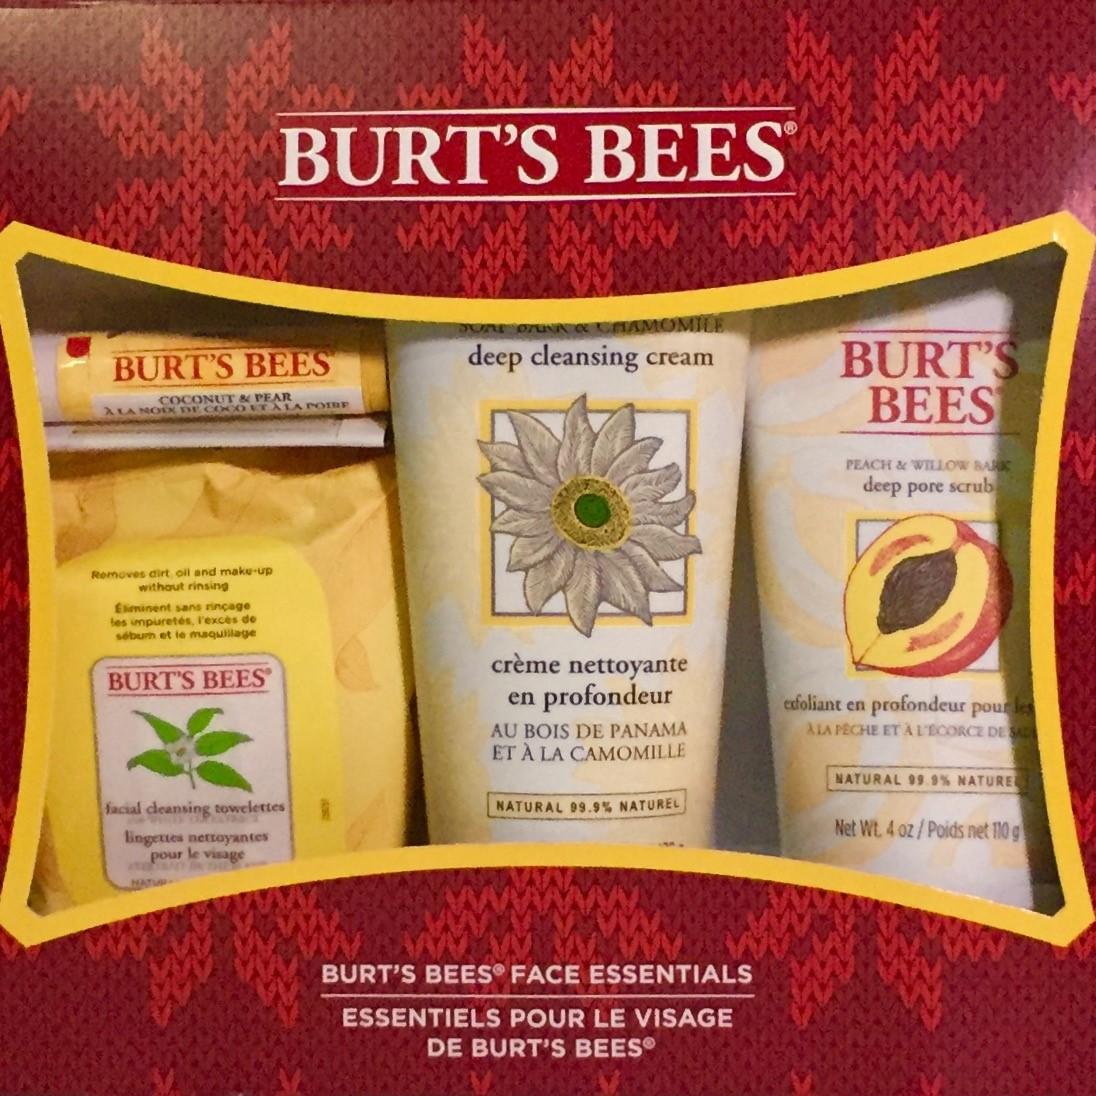 Holiday Gift Sets from Fresh & Burt's Bees